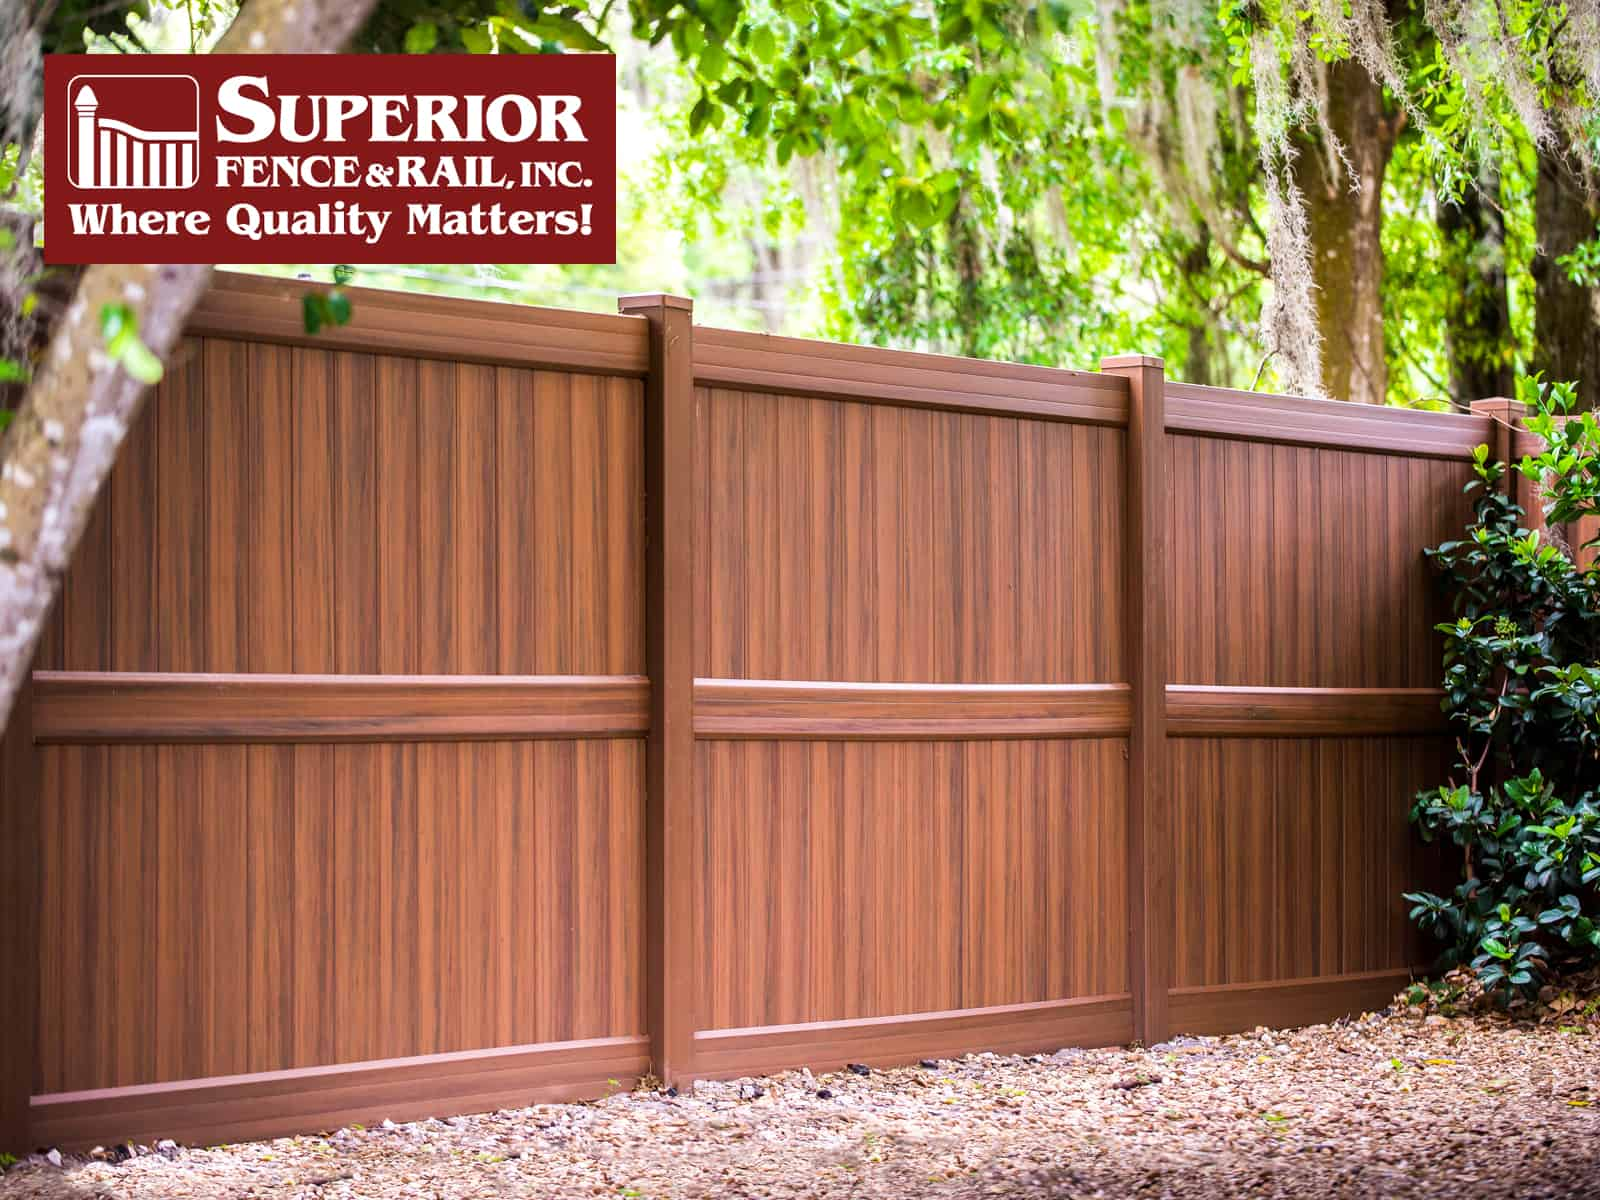 Parker fence company contractor